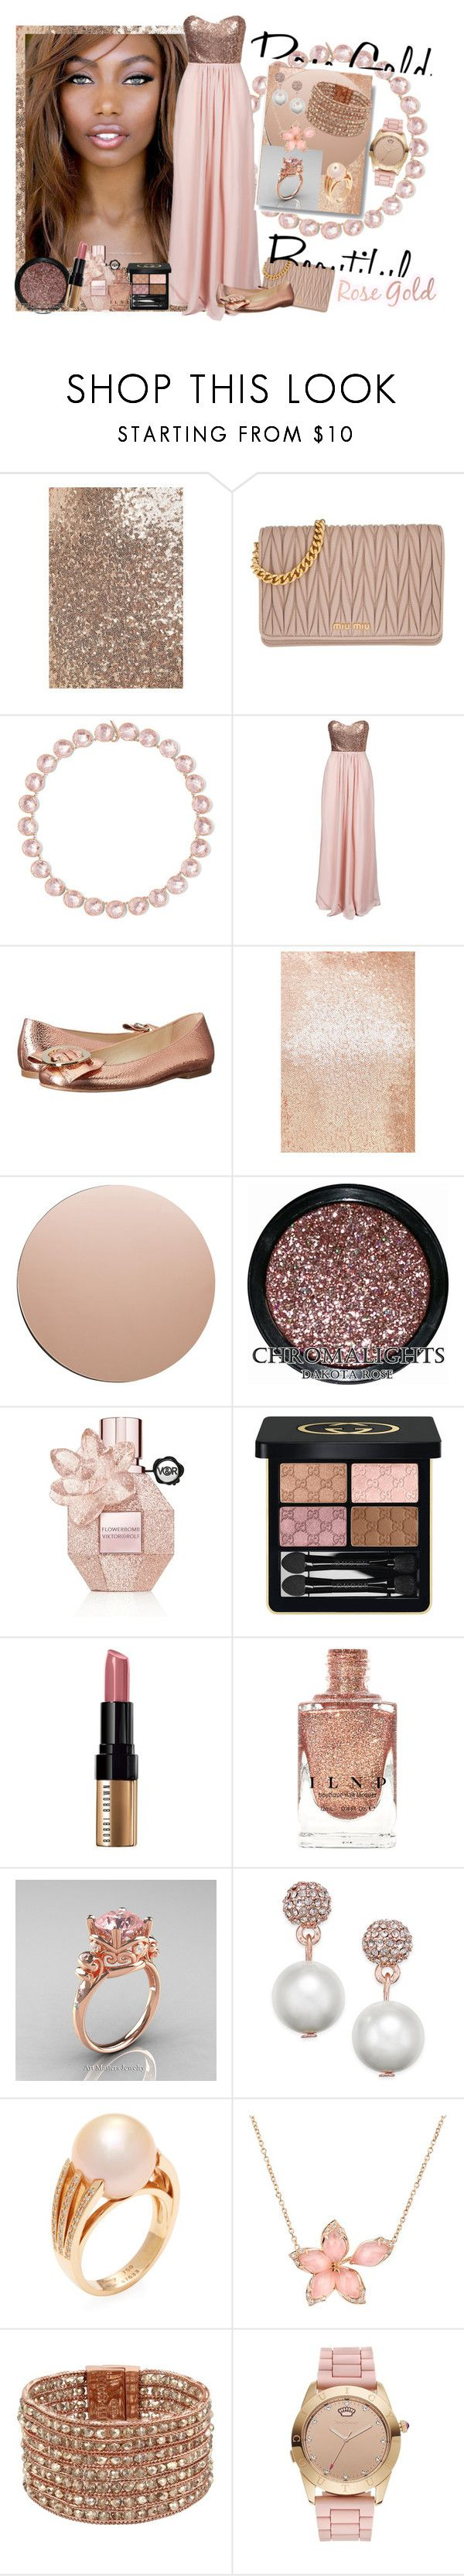 """""""Rose Gold Jewelry"""" by sheri-gifford-pauline ❤ liked on Polyvore featuring LULUS, Miu Miu, Larkspur & Hawk, NLY Eve, Frances Valentine, House Doctor, Viktor & Rolf, Gucci, Bobbi Brown Cosmetics and Modern Vintage"""